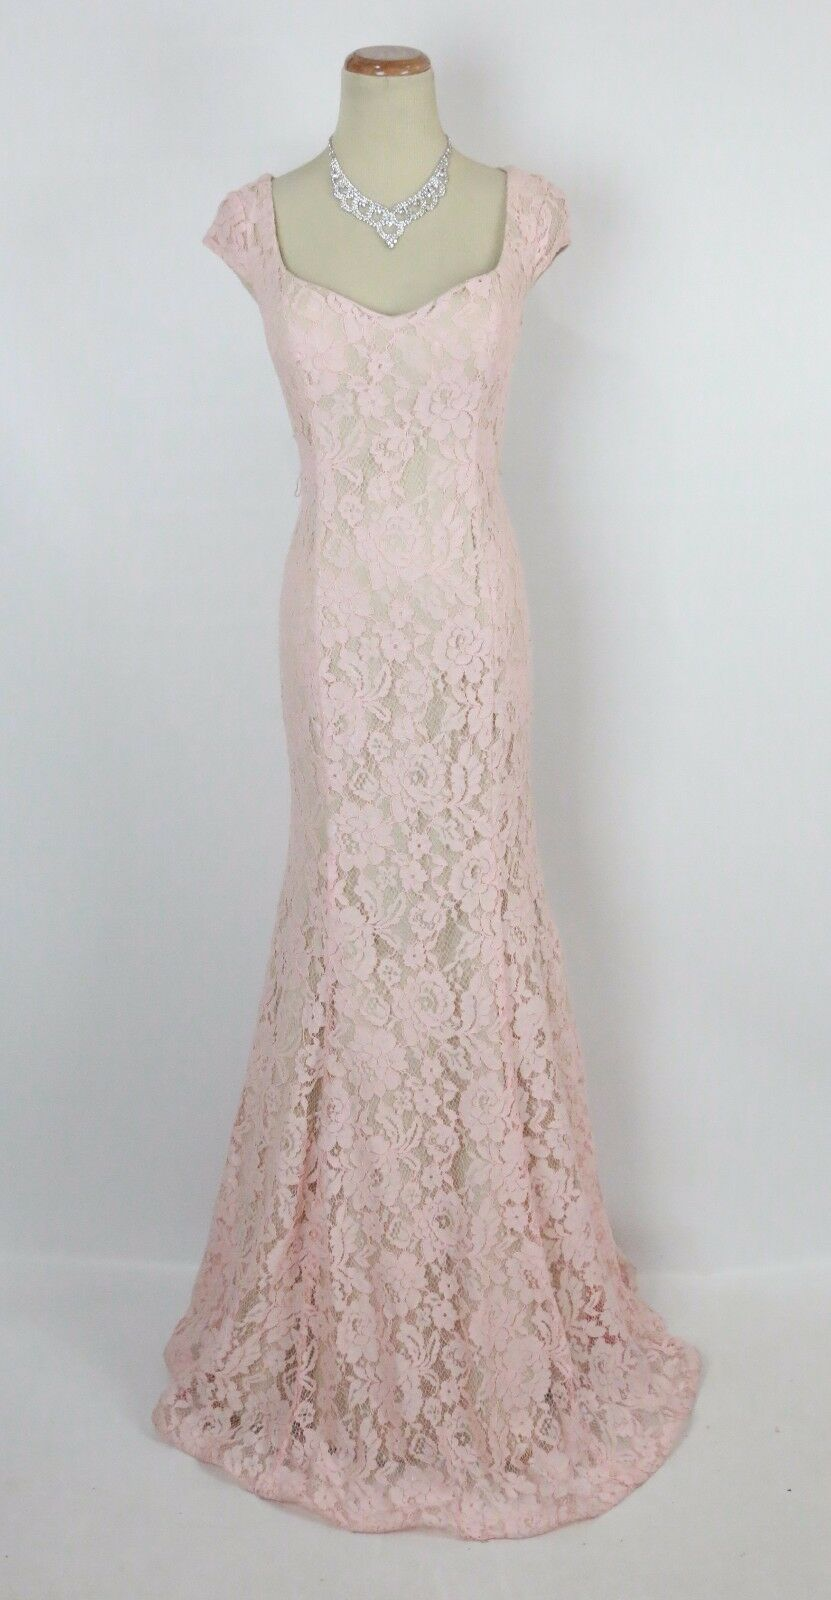 NWT Sequin Hearts Prom Formal Cruise Dress SIZE 11 Evening Gown  Lace Pink